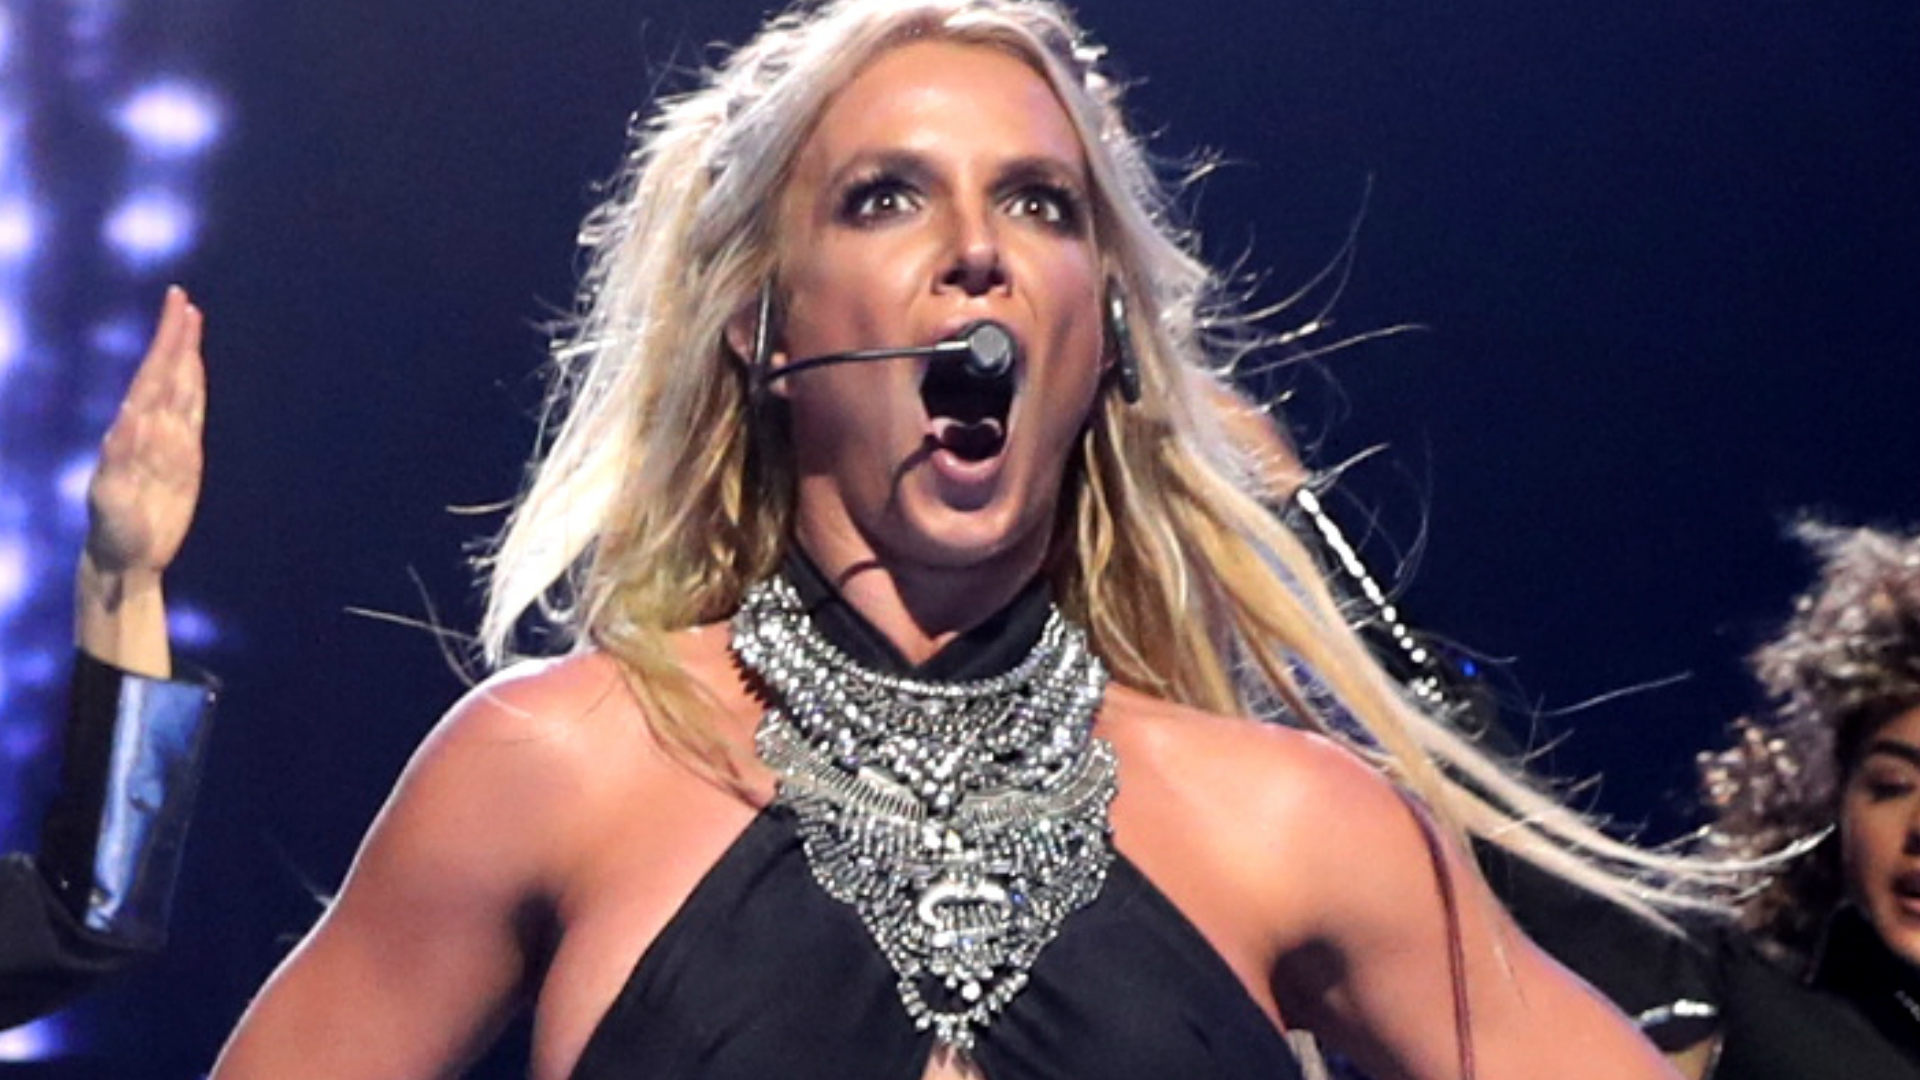 Britney Spears in Las Vegas